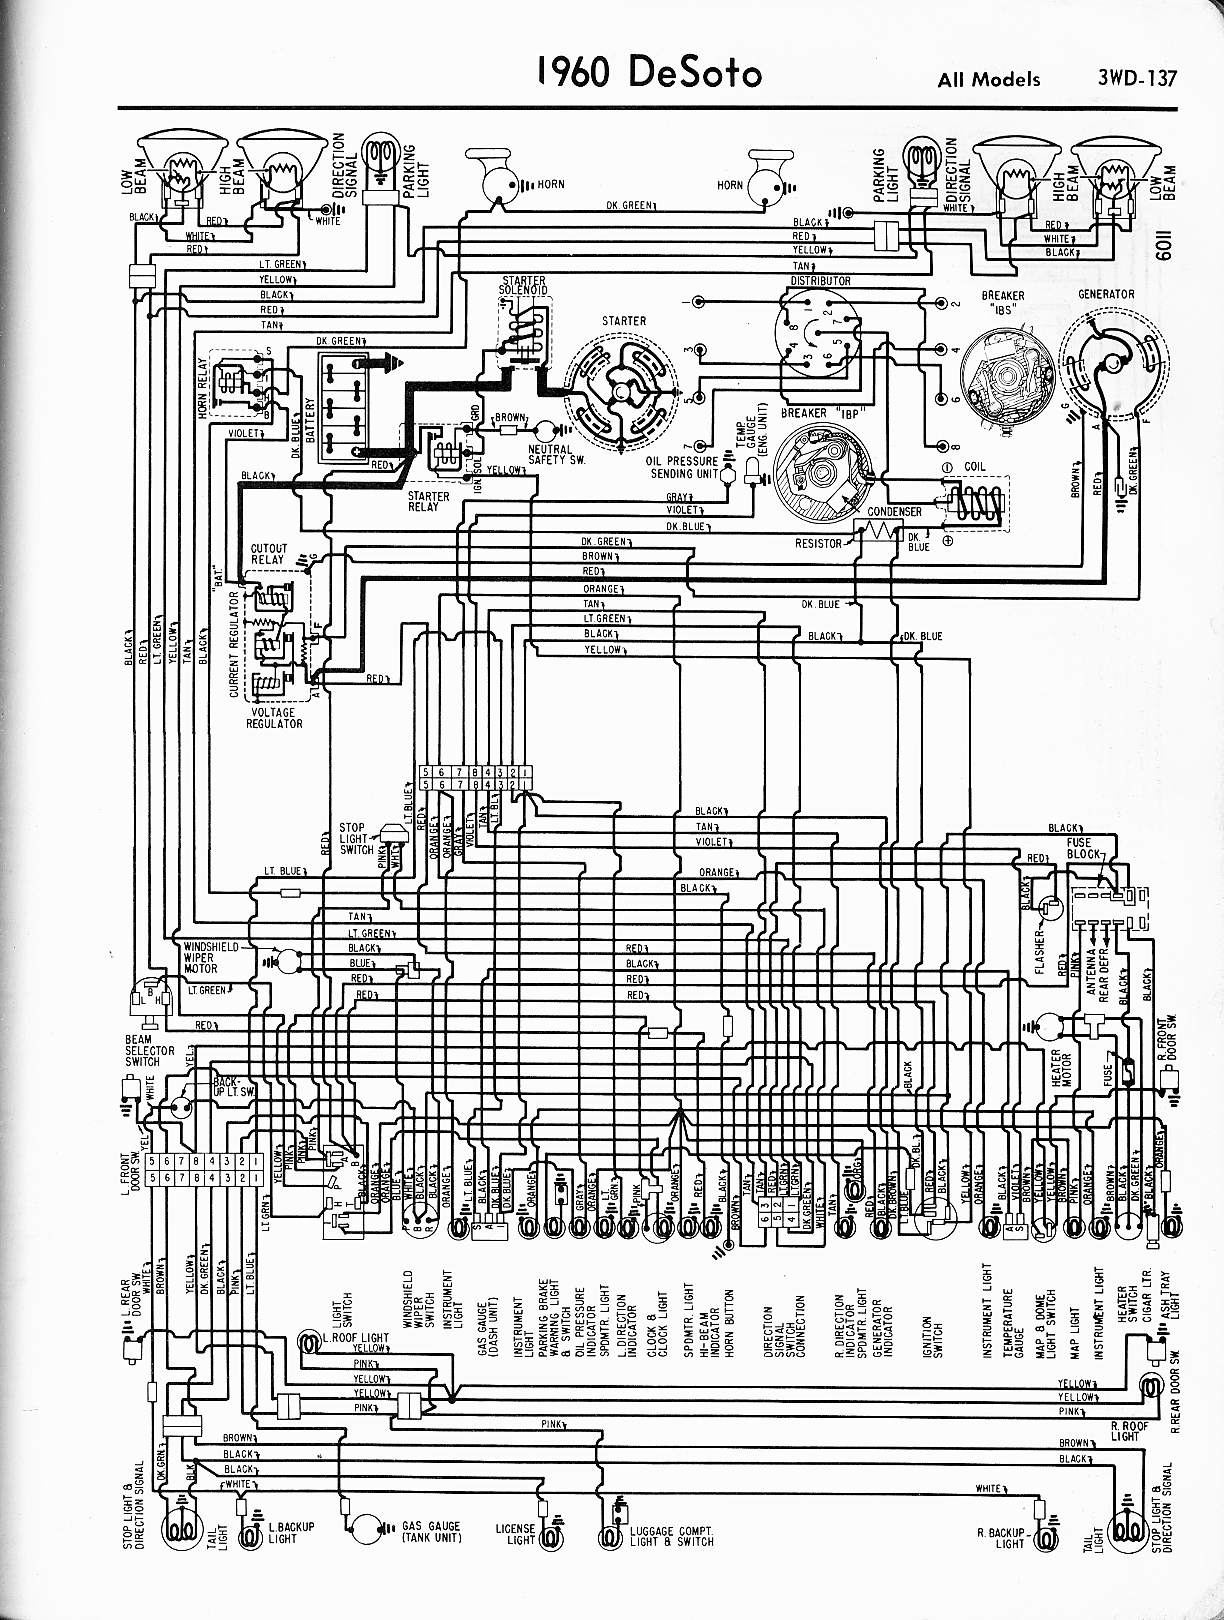 1960 desoto wiring diagram diy enthusiasts wiring diagrams u2022 rh broadwaycomputers us